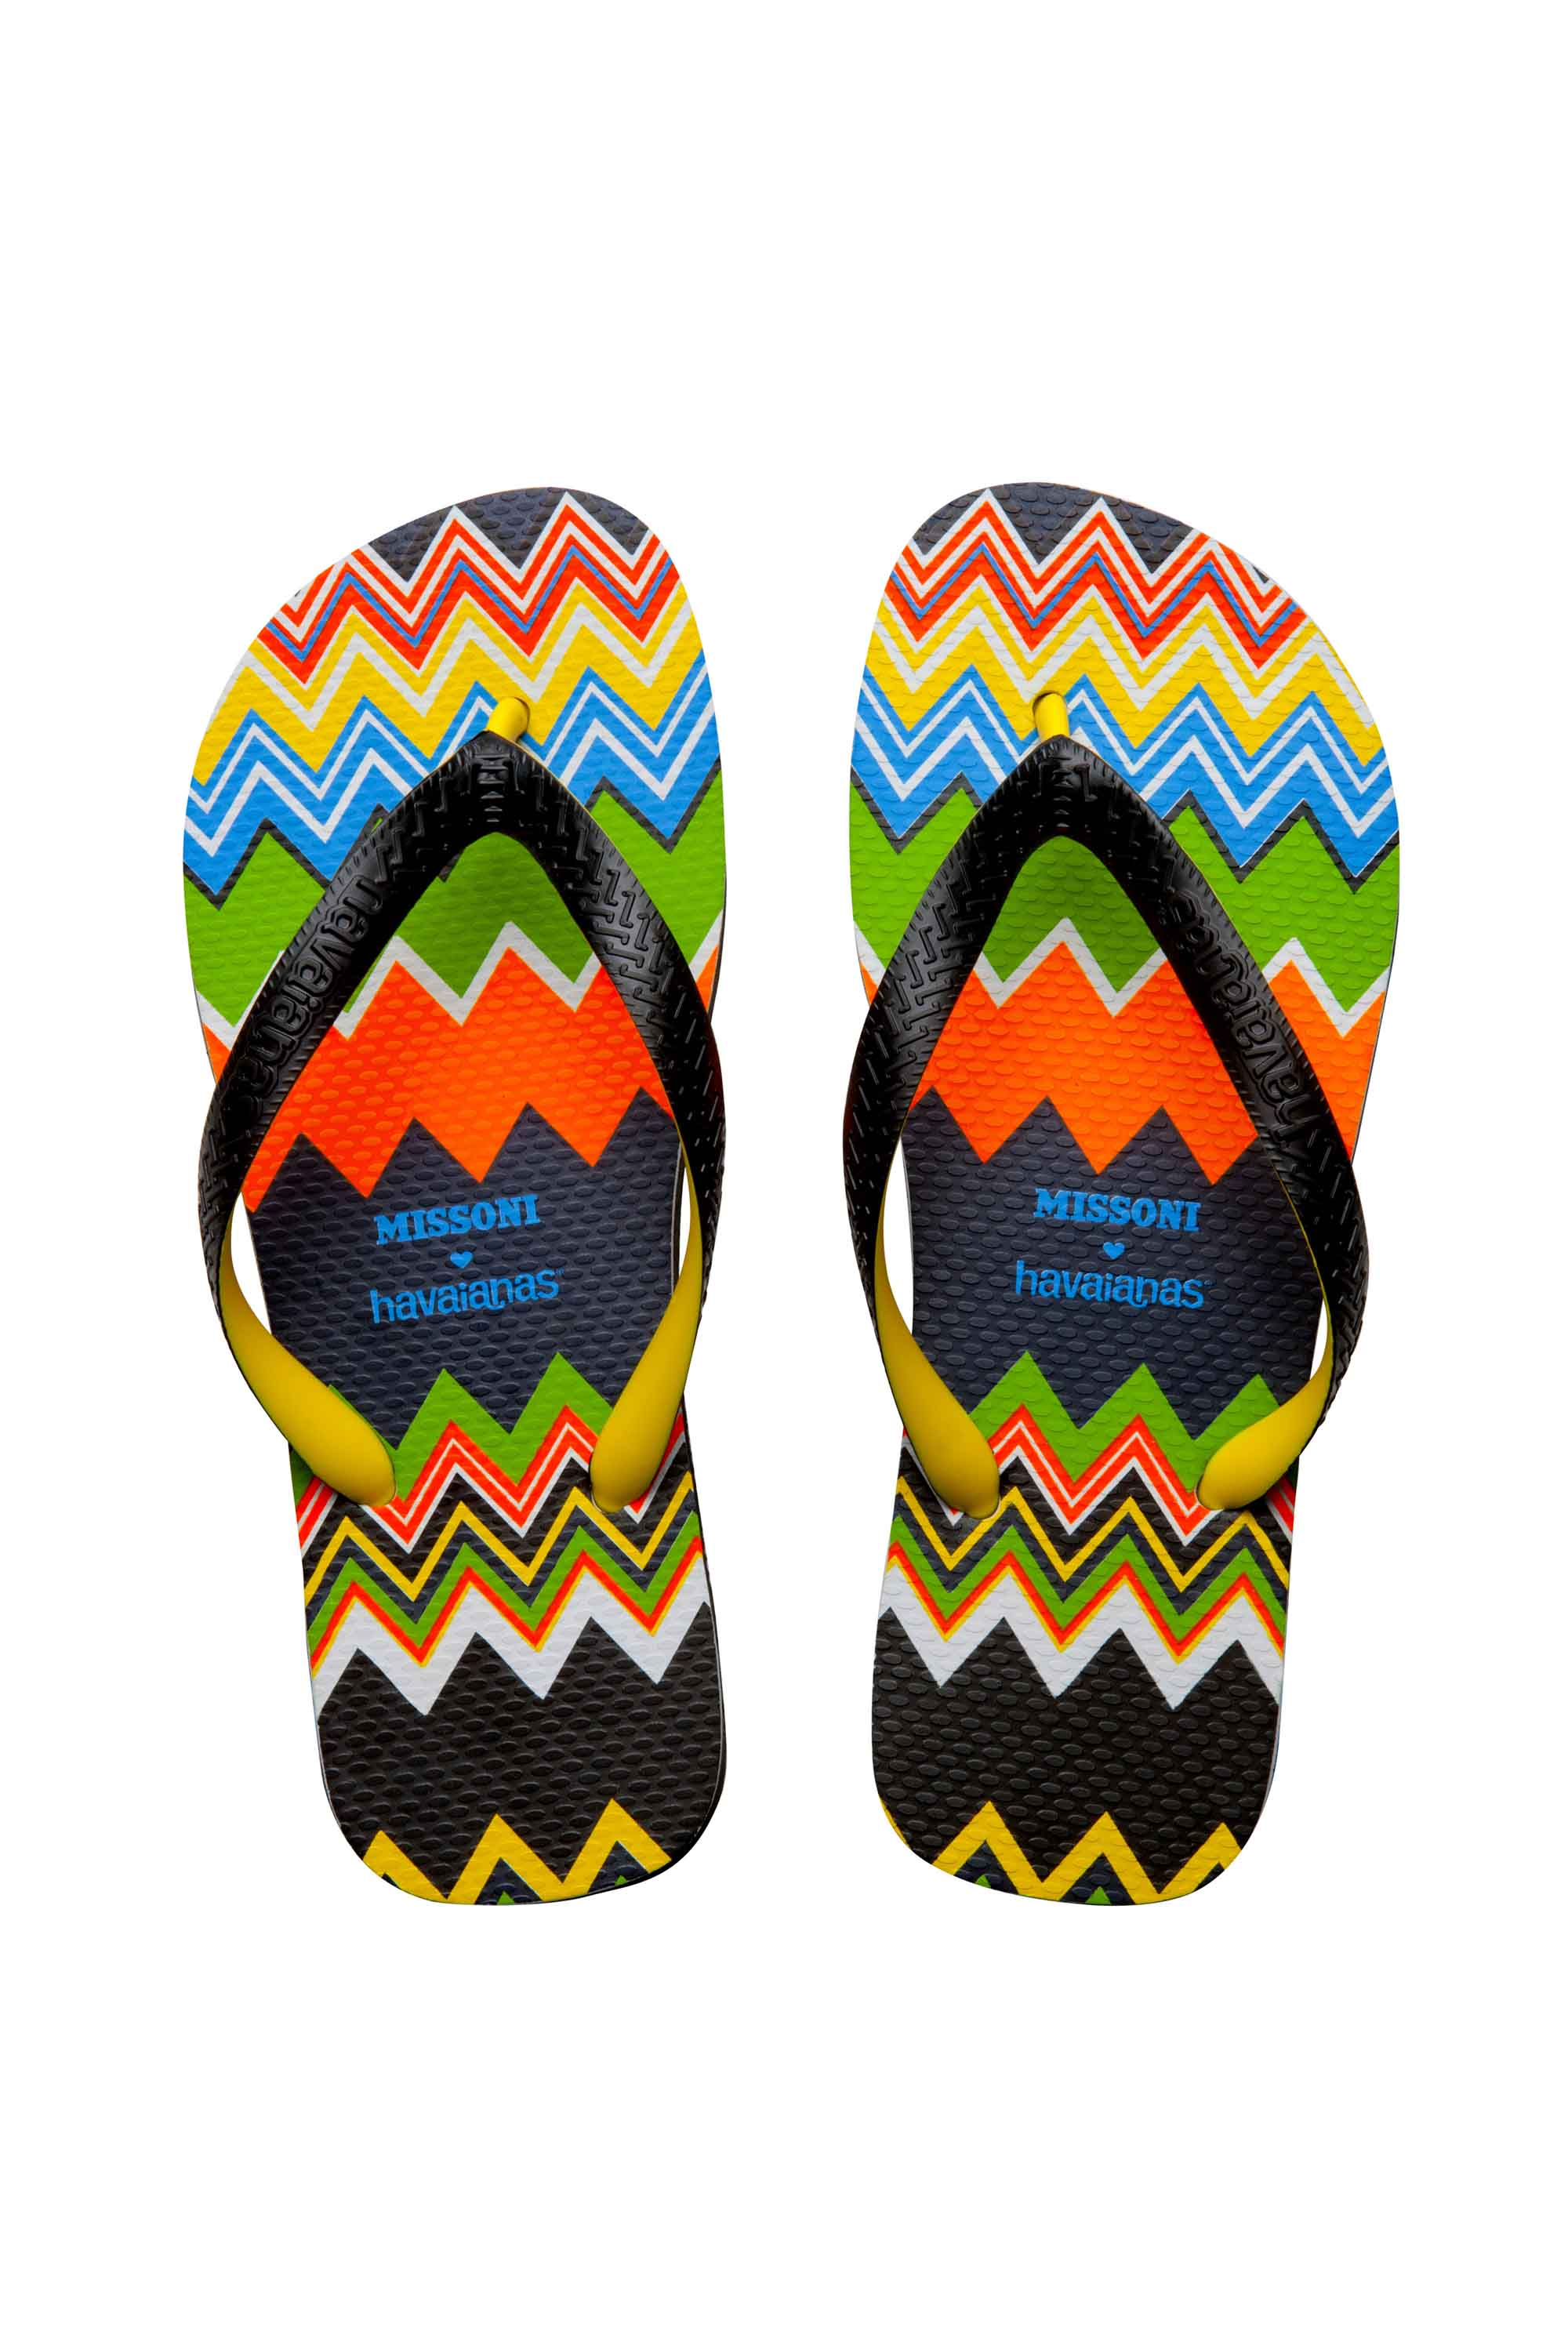 What are flip-flops?